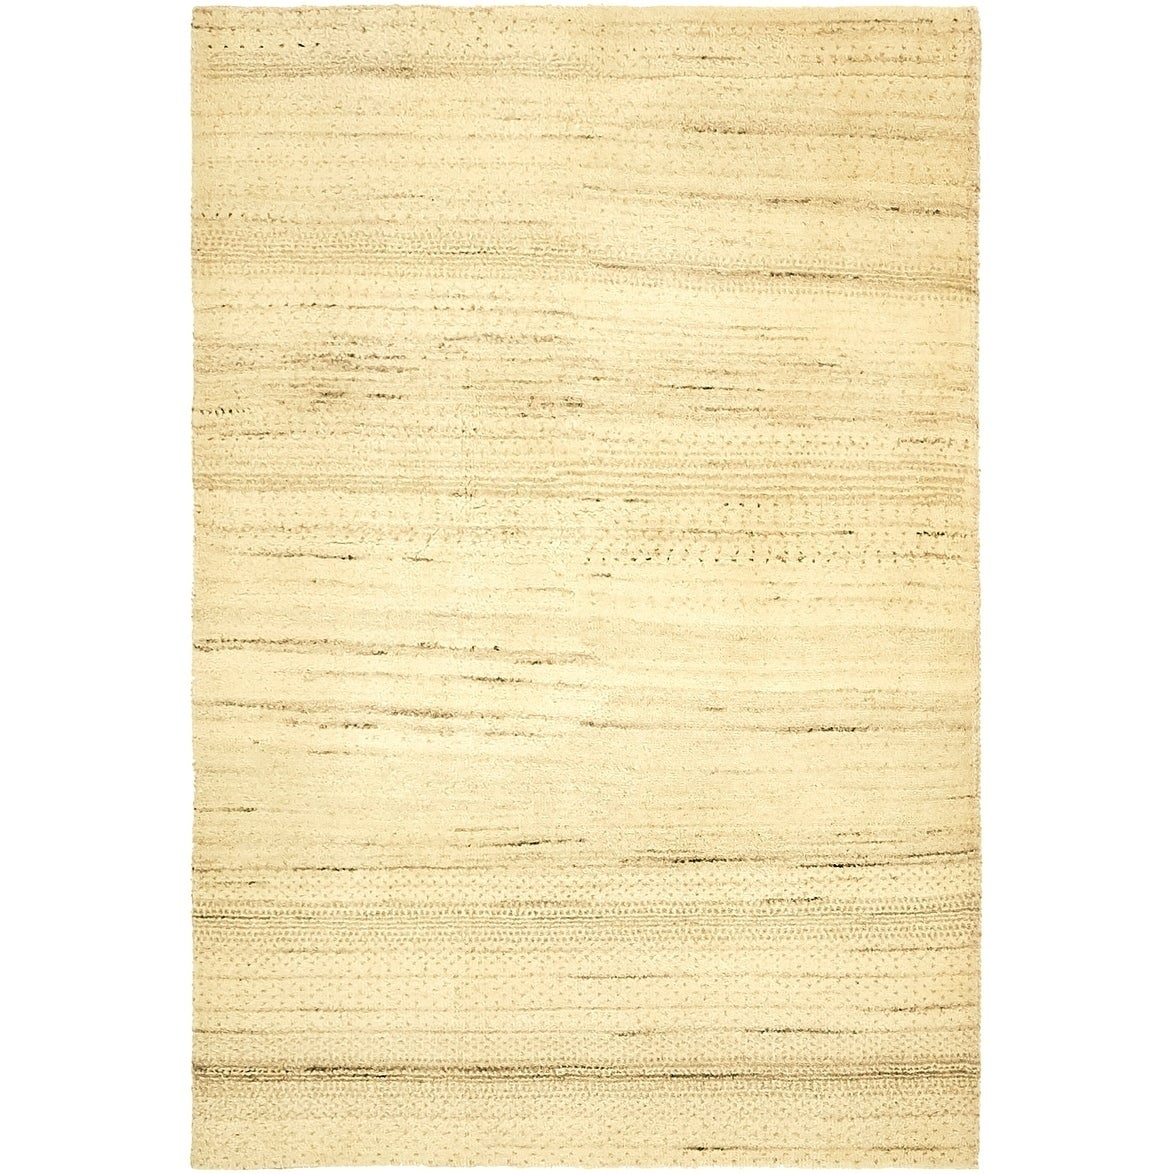 Hand Knotted Kashkuli Gabbeh Wool Area Rug - 3 2 x 4 9 (Cream - 3 2 x 4 9)